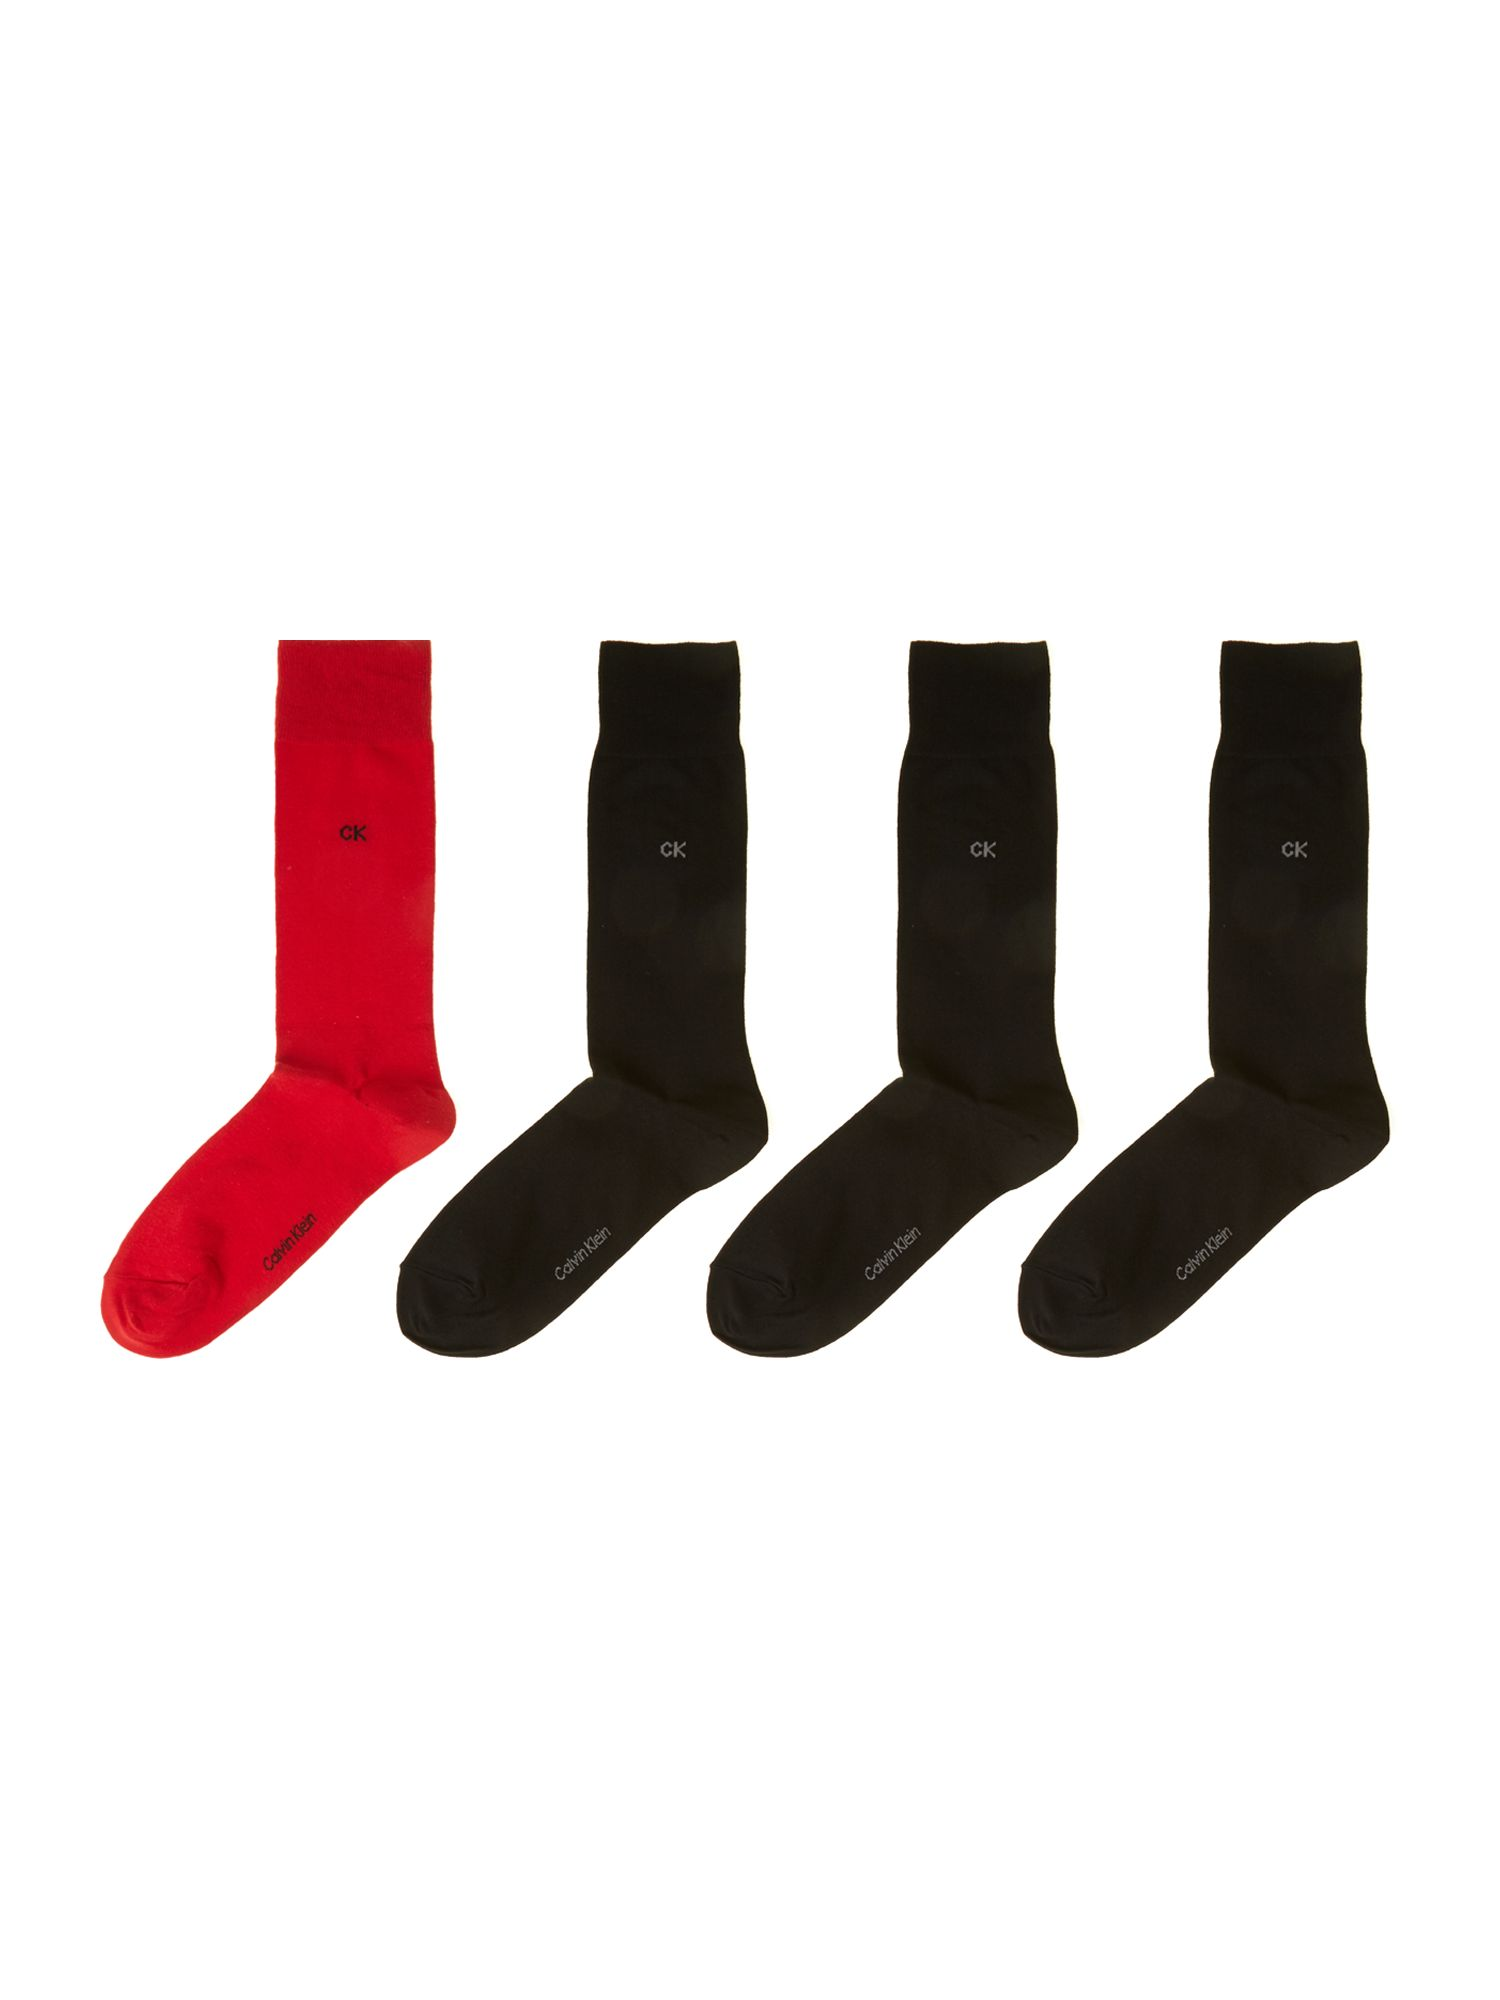 Cotton blend four pack of mens socks